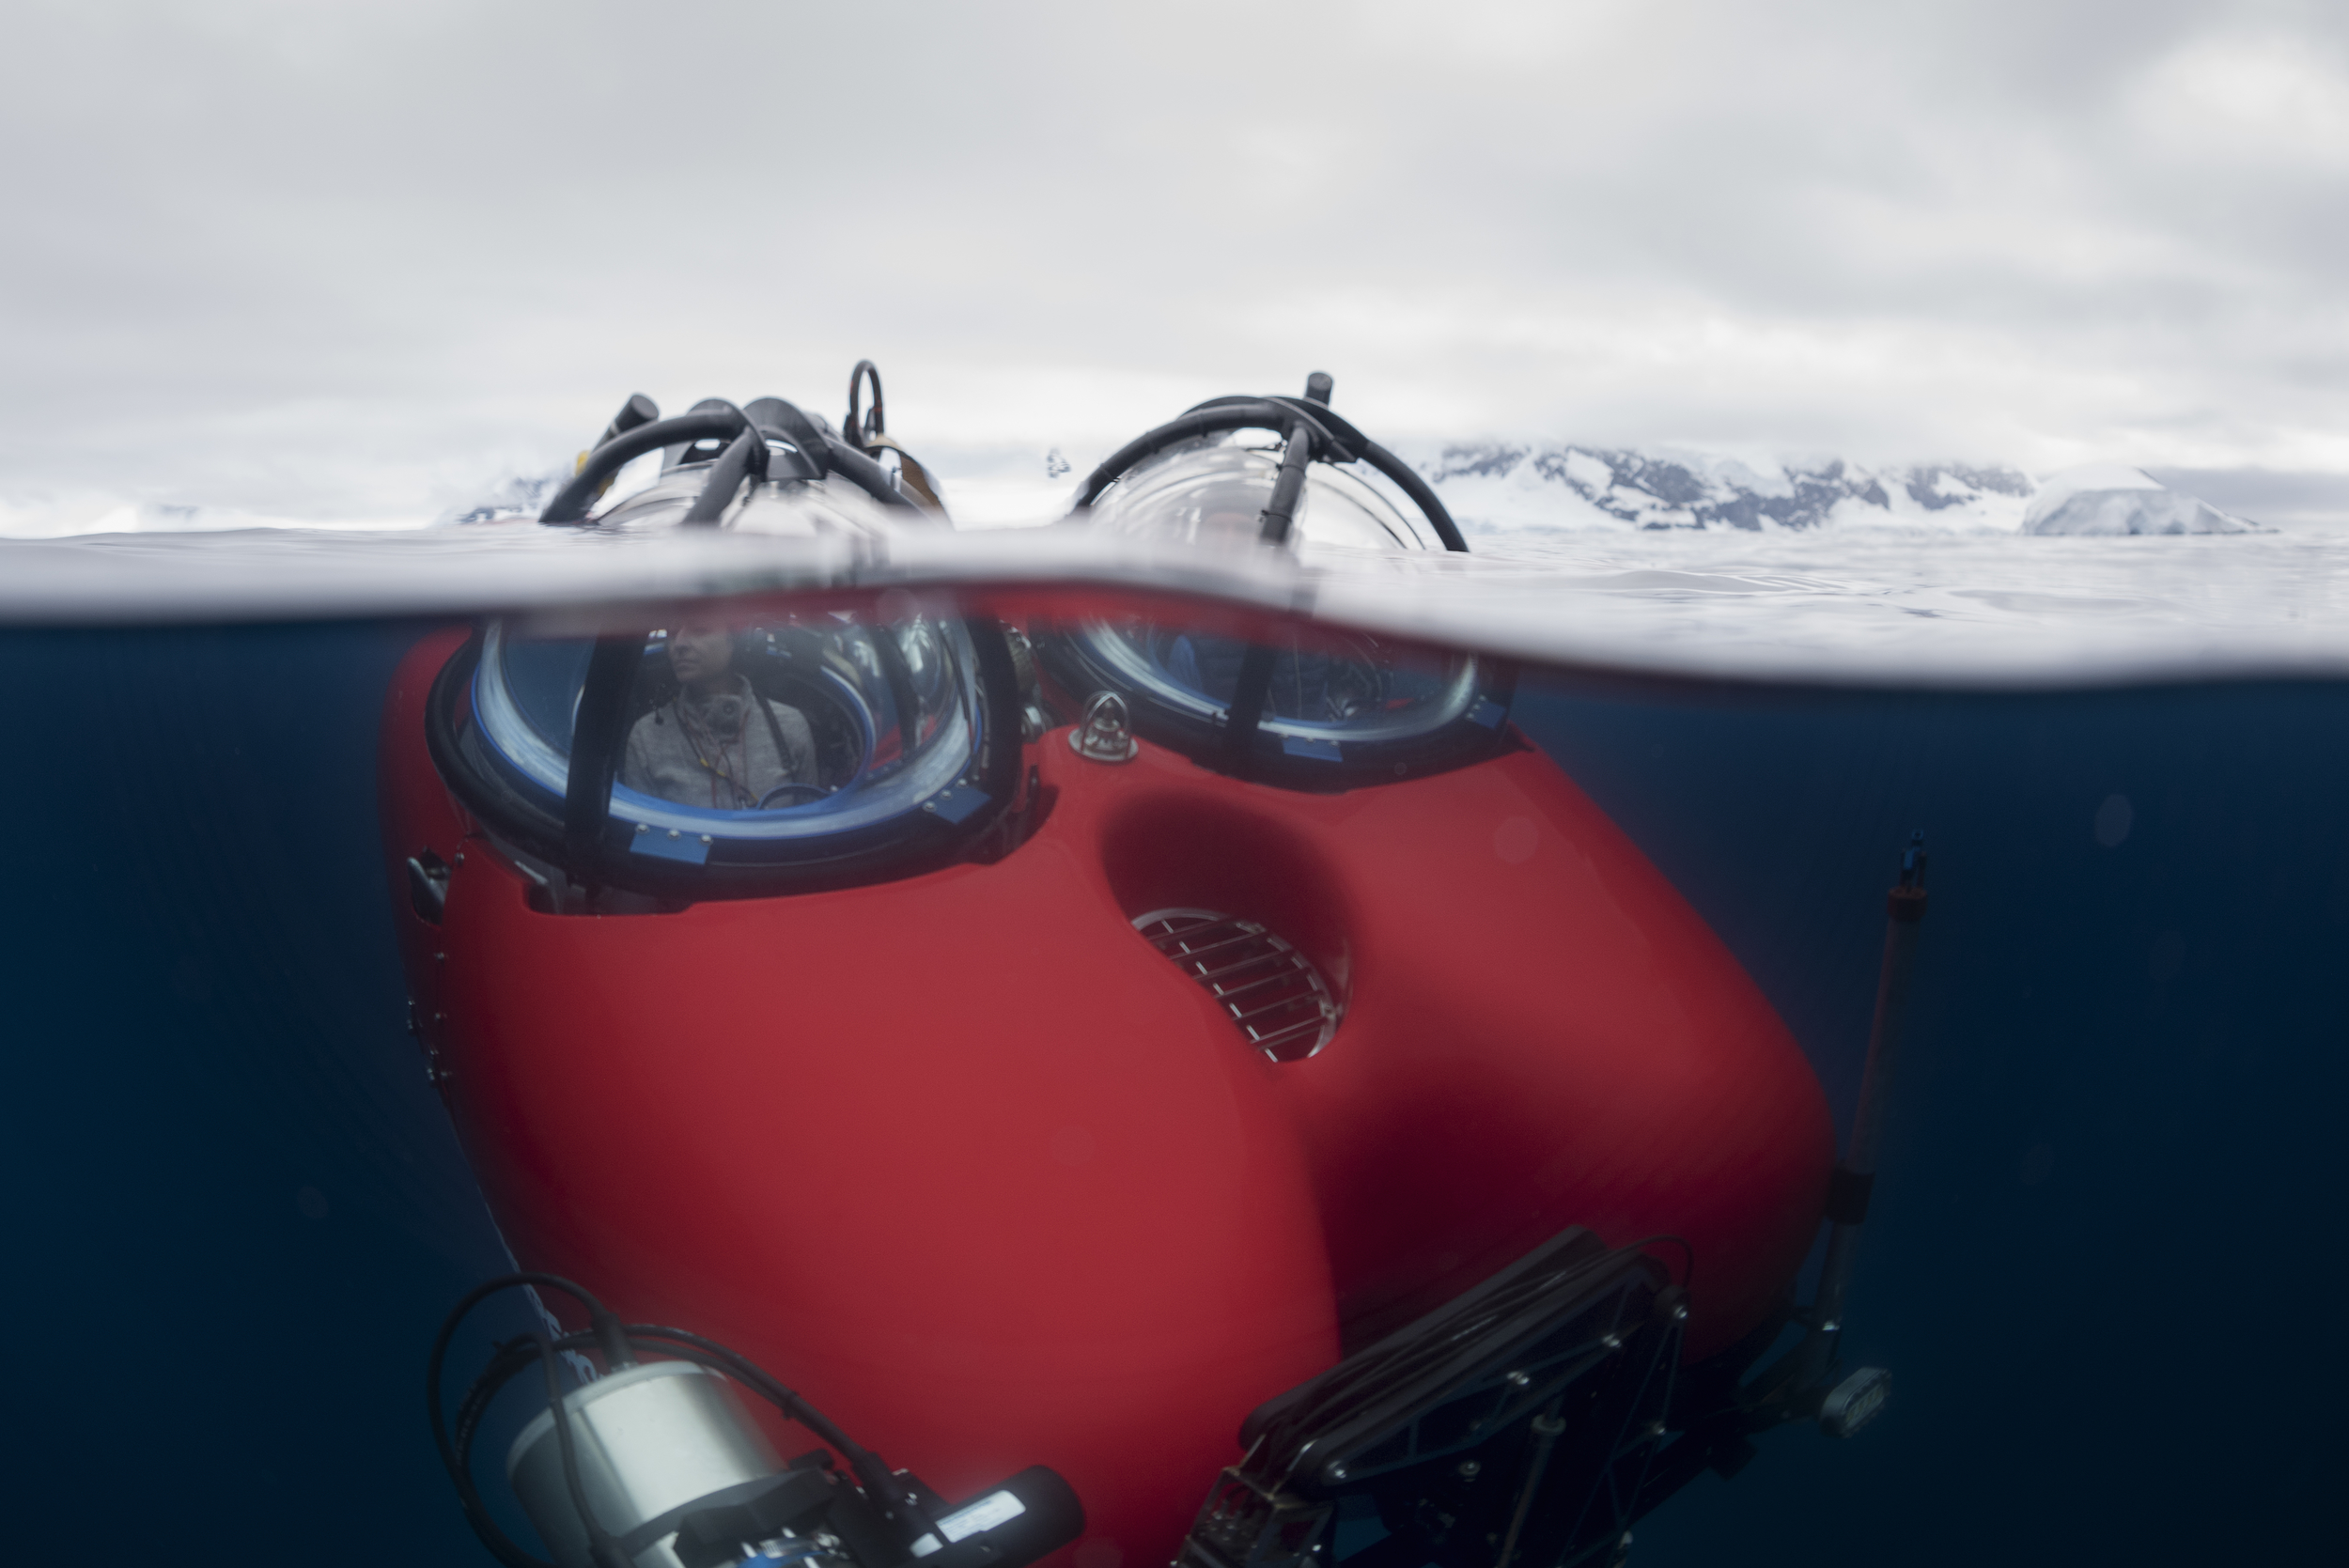 Red submarines partially submerged